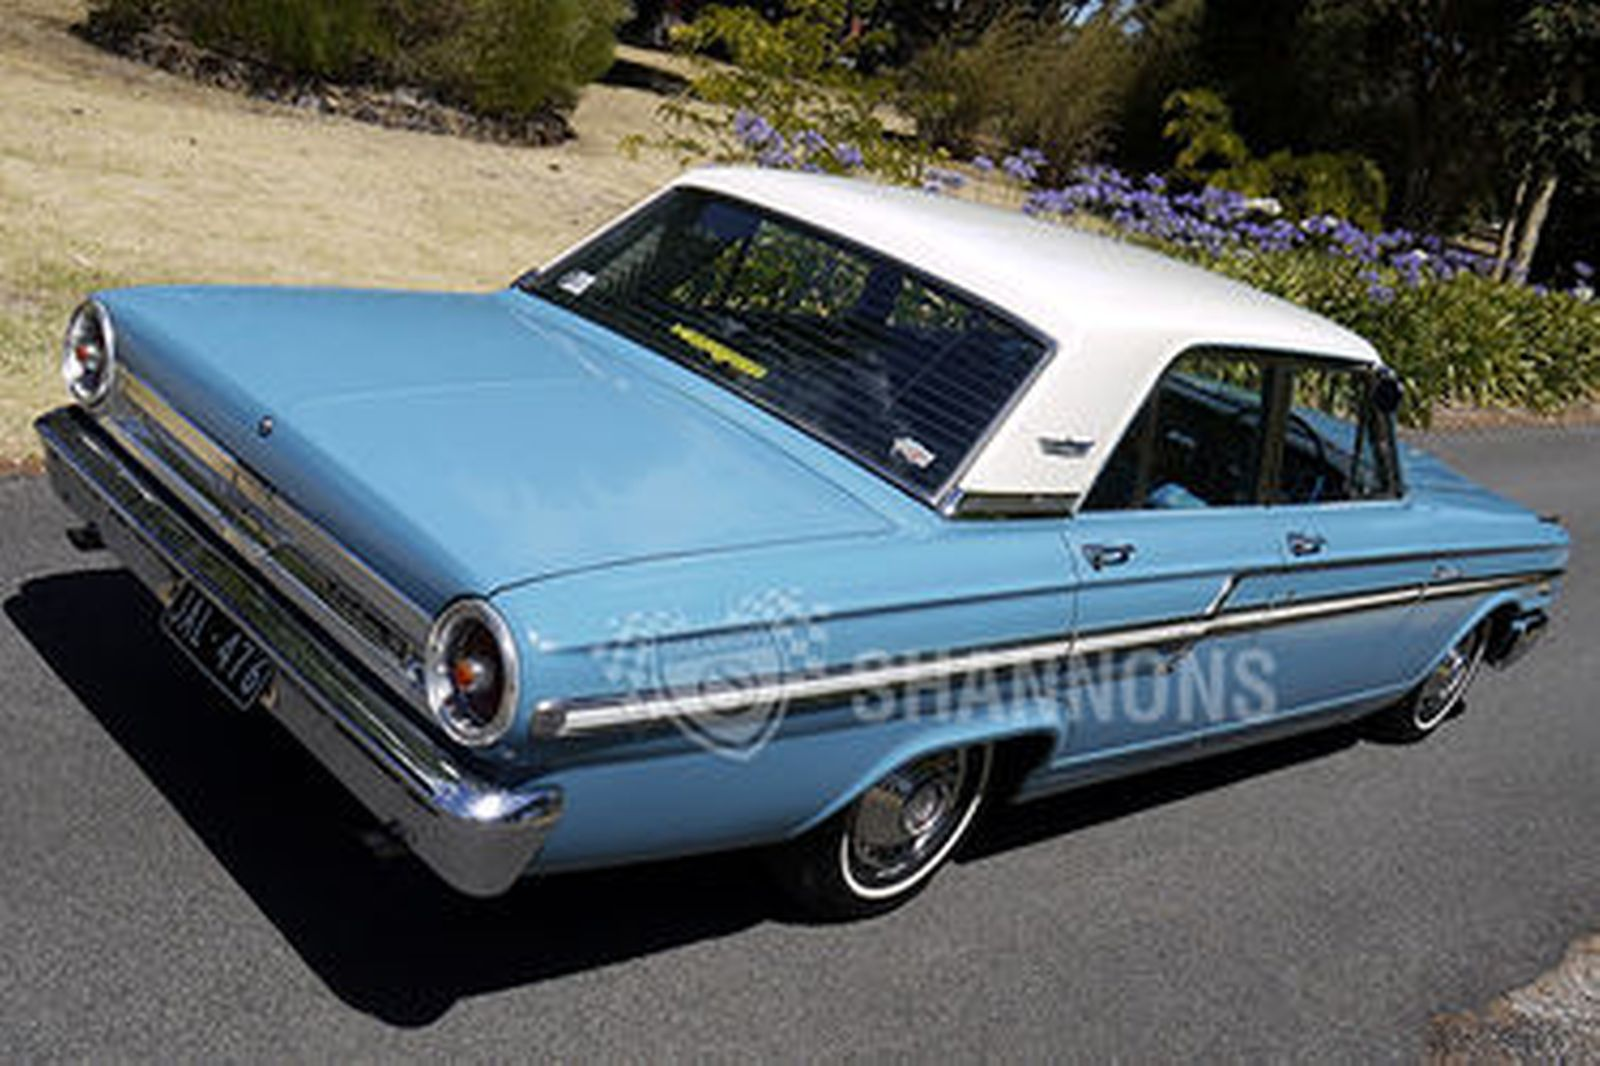 Ford Fairlane 500 Compact Sedan Auctions - Lot 37 - Shannons